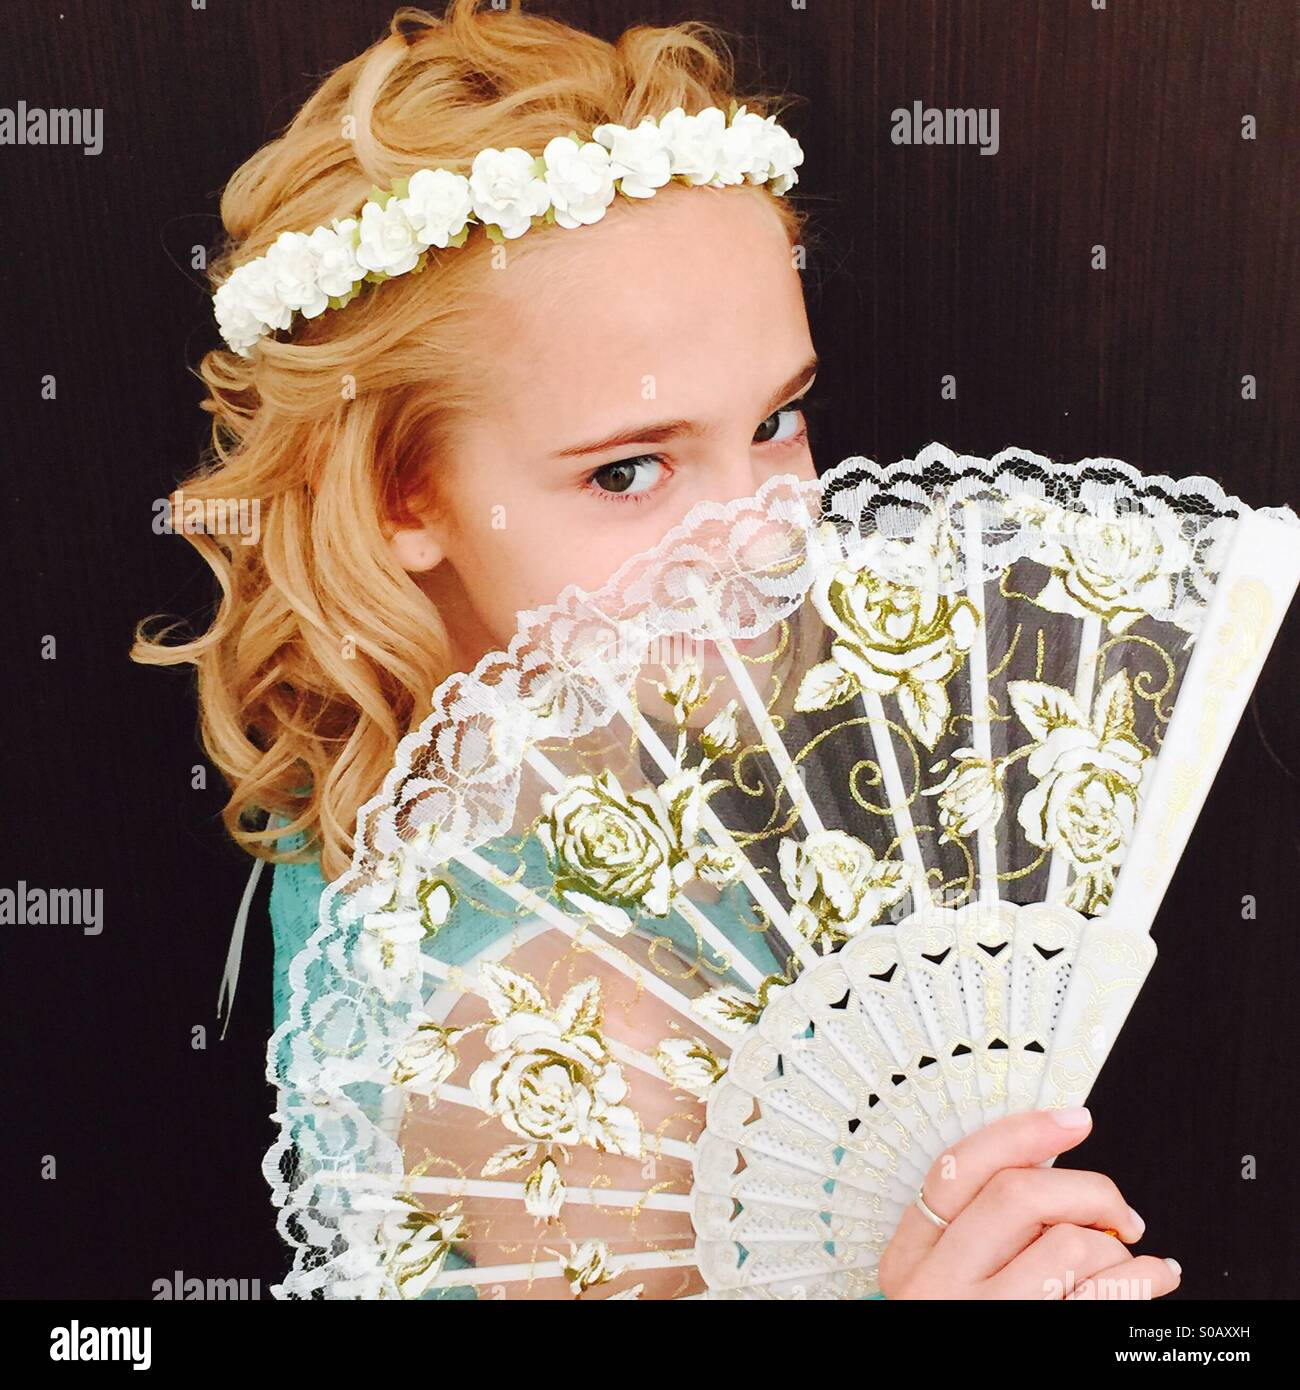 Wedding - Stock Image